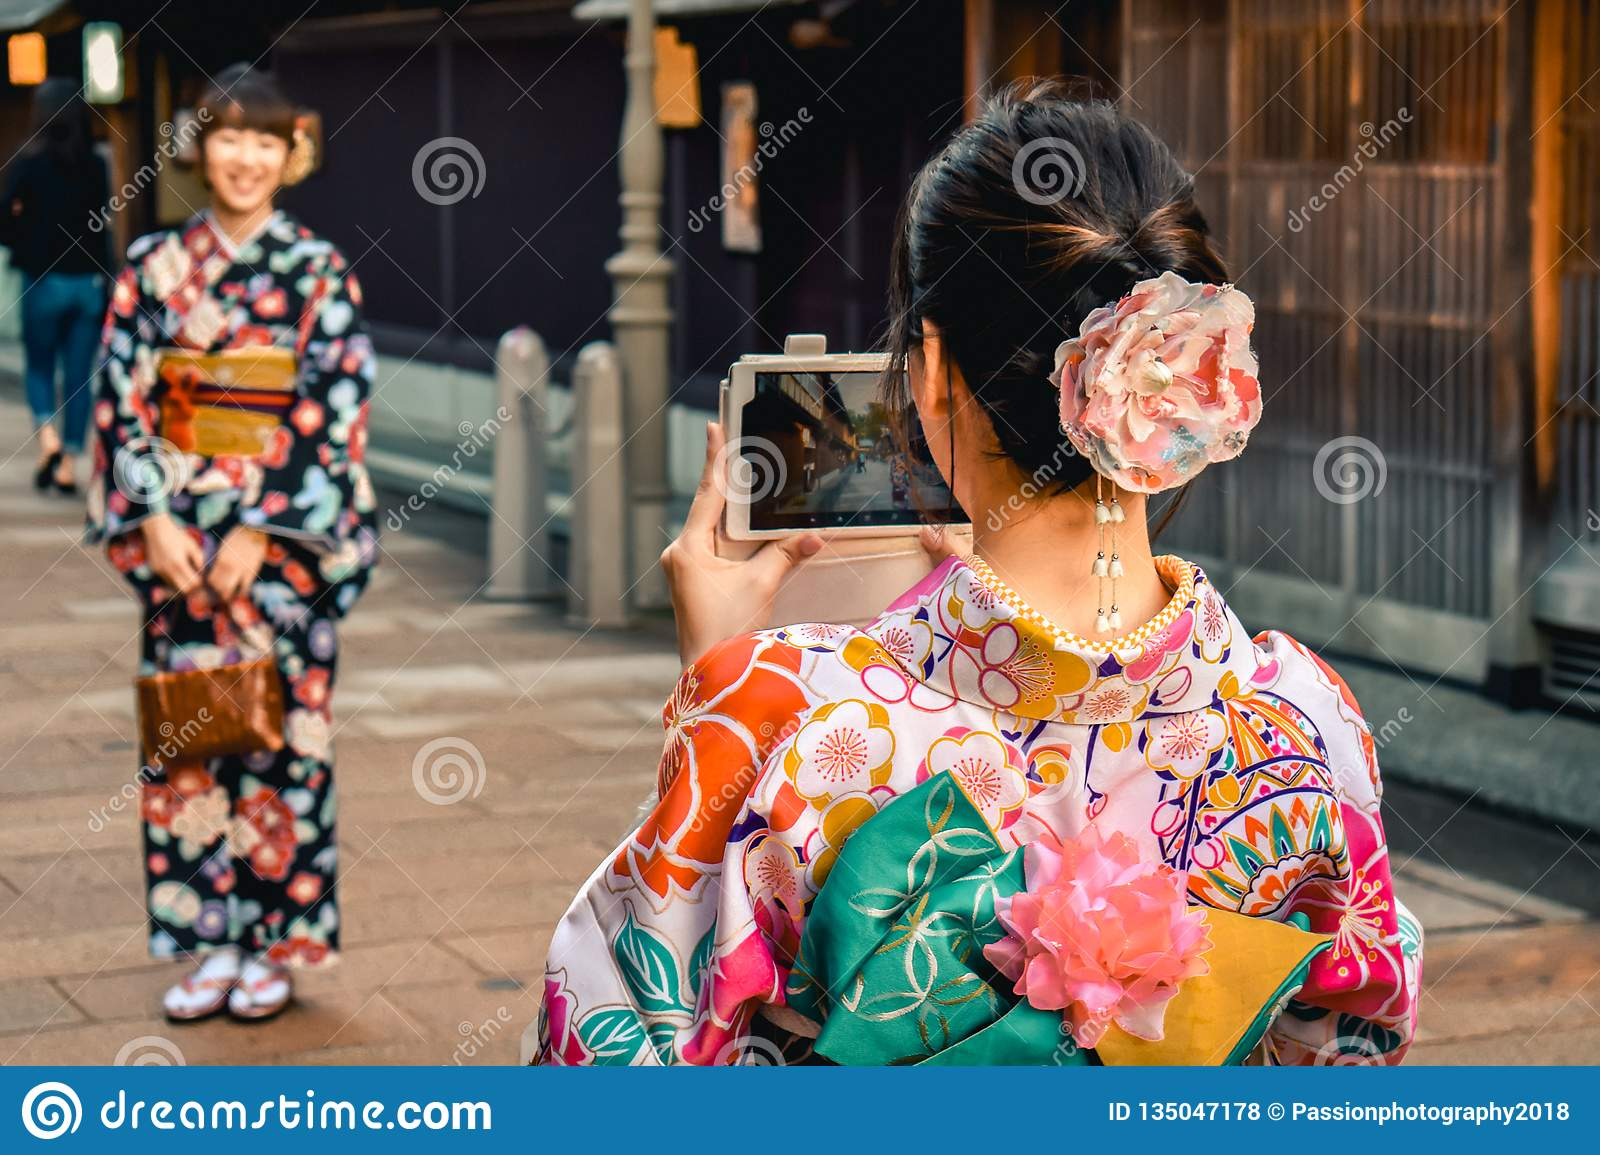 Japanese girls in Kimono`s taking photos of each other on a cell phone in the Kanazawa old town